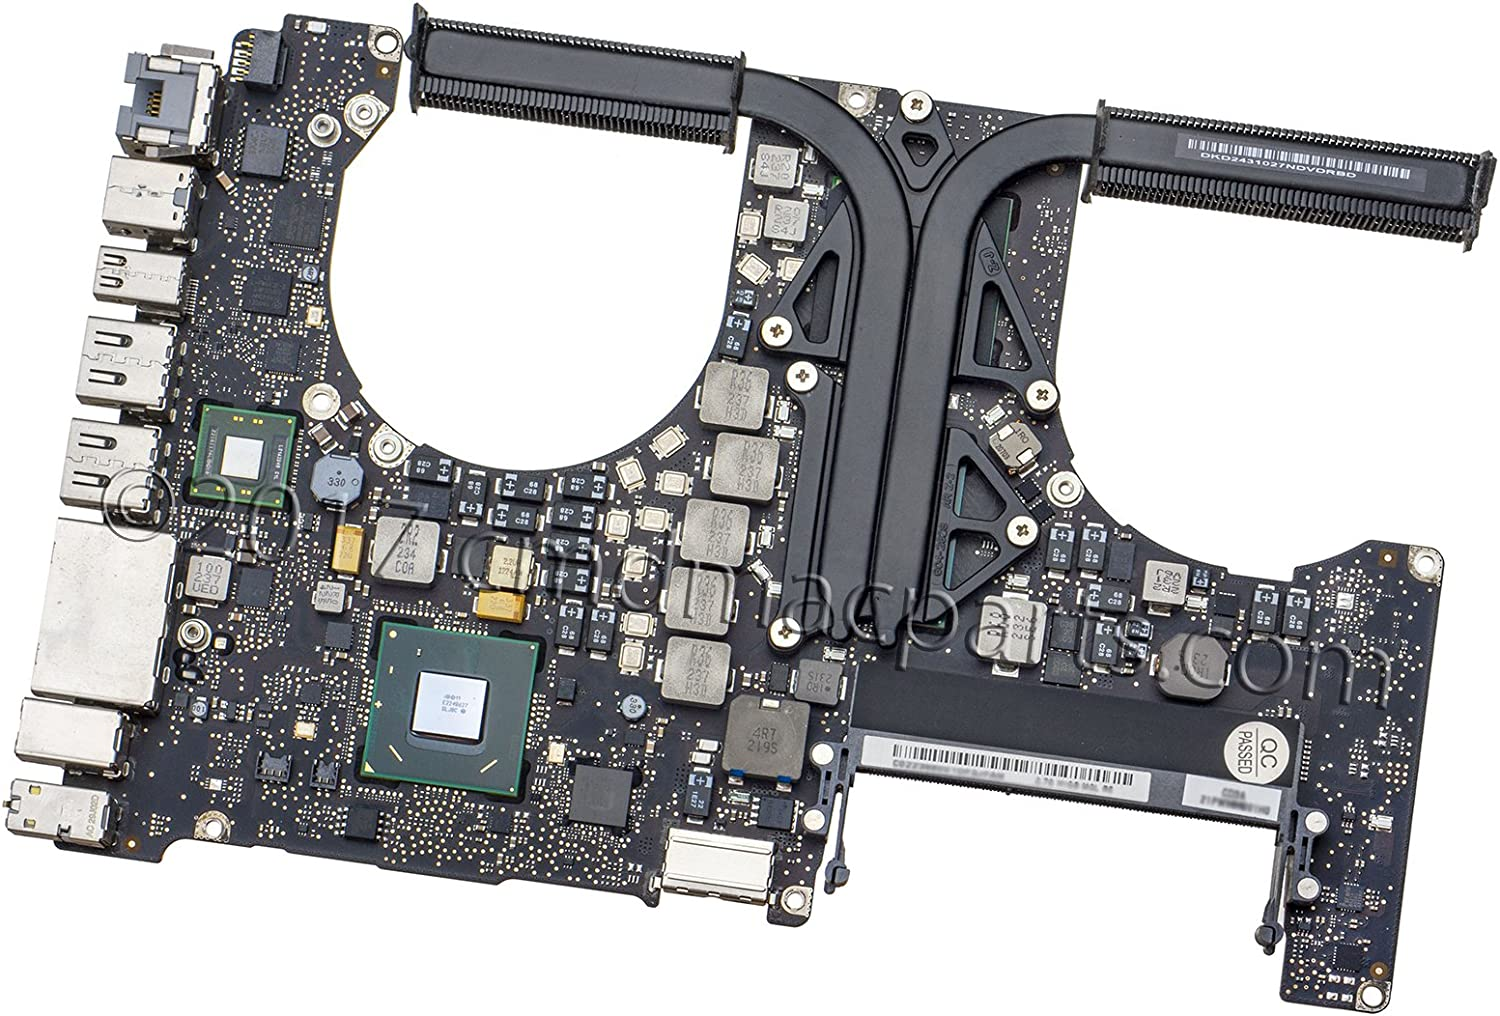 "Odyson - Logic Board 2.3GHz Core i7 (i7-3615QM) Replacement for MacBook Pro 15"" Unibody A1286 Mid 2012 (MD103, MD104)"